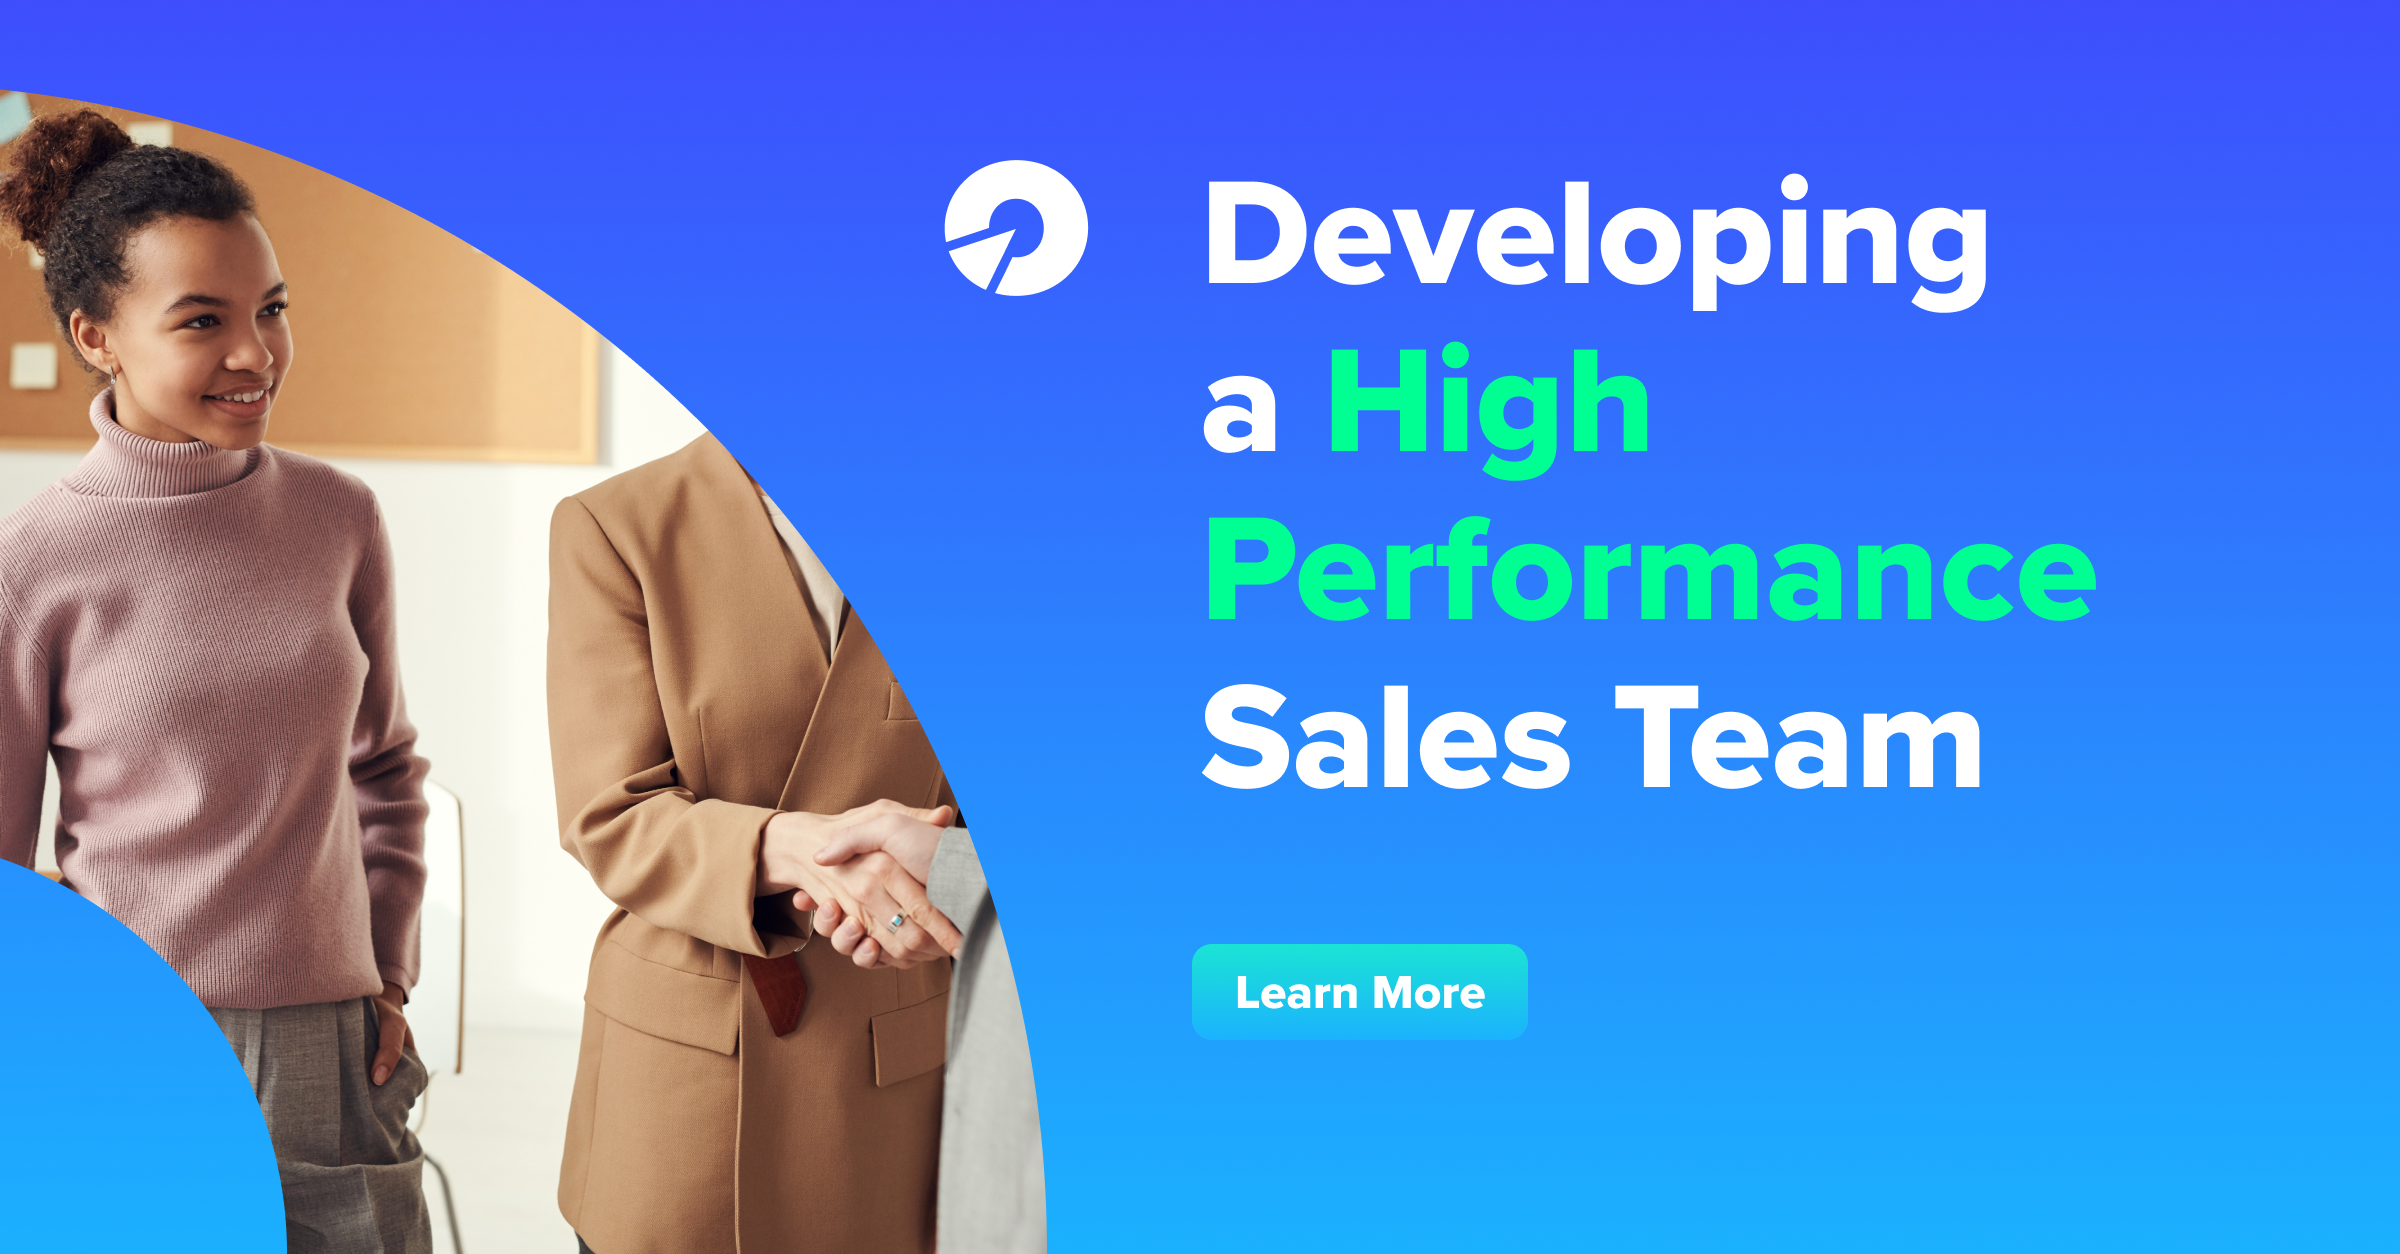 Developing a High-Performance Sales Team